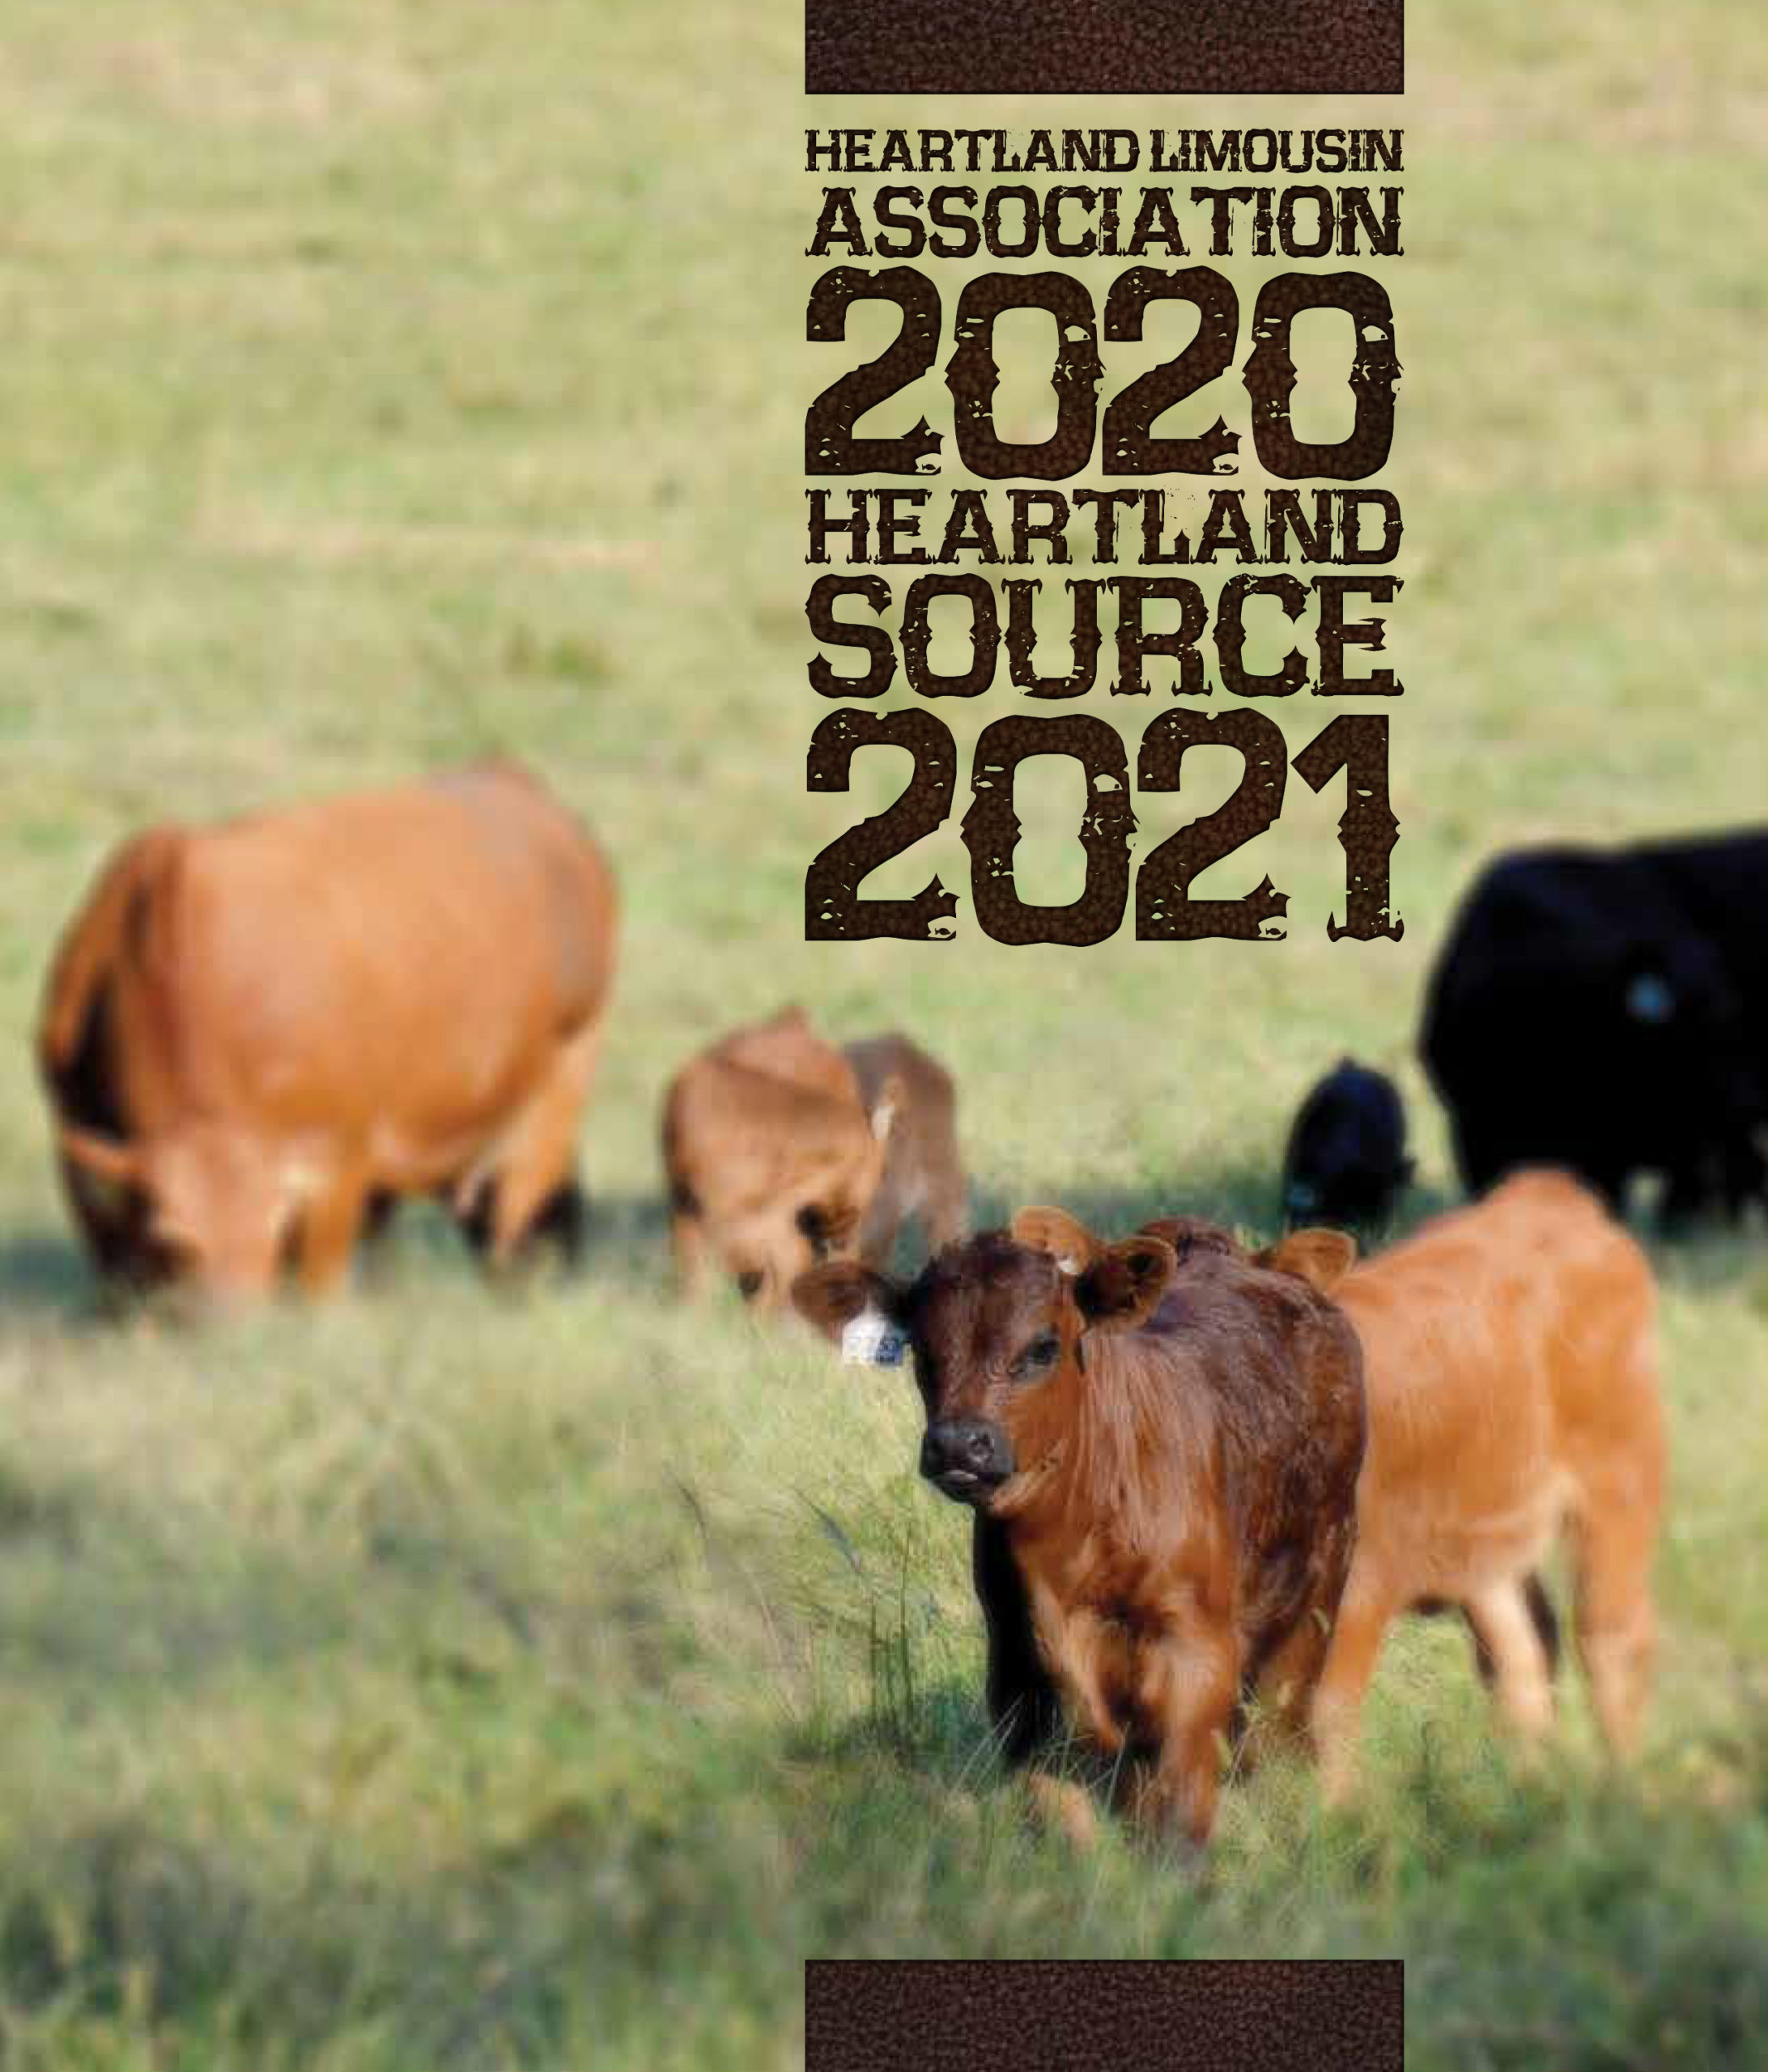 2020 Heartland Source